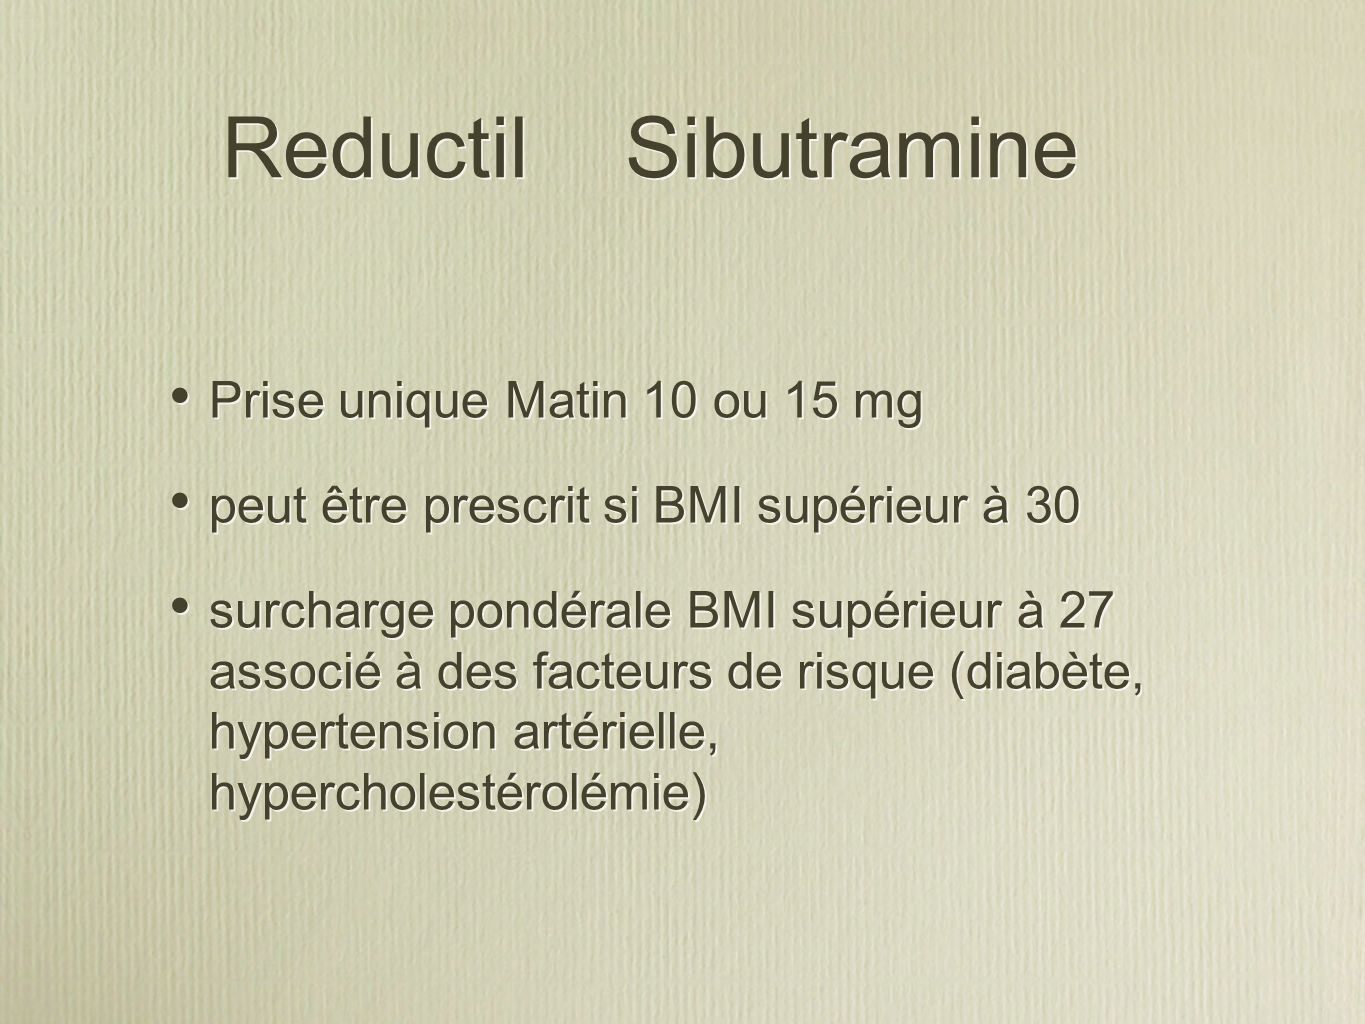 Reductil Sibutramine Prise unique Matin 10 ou 15 mg